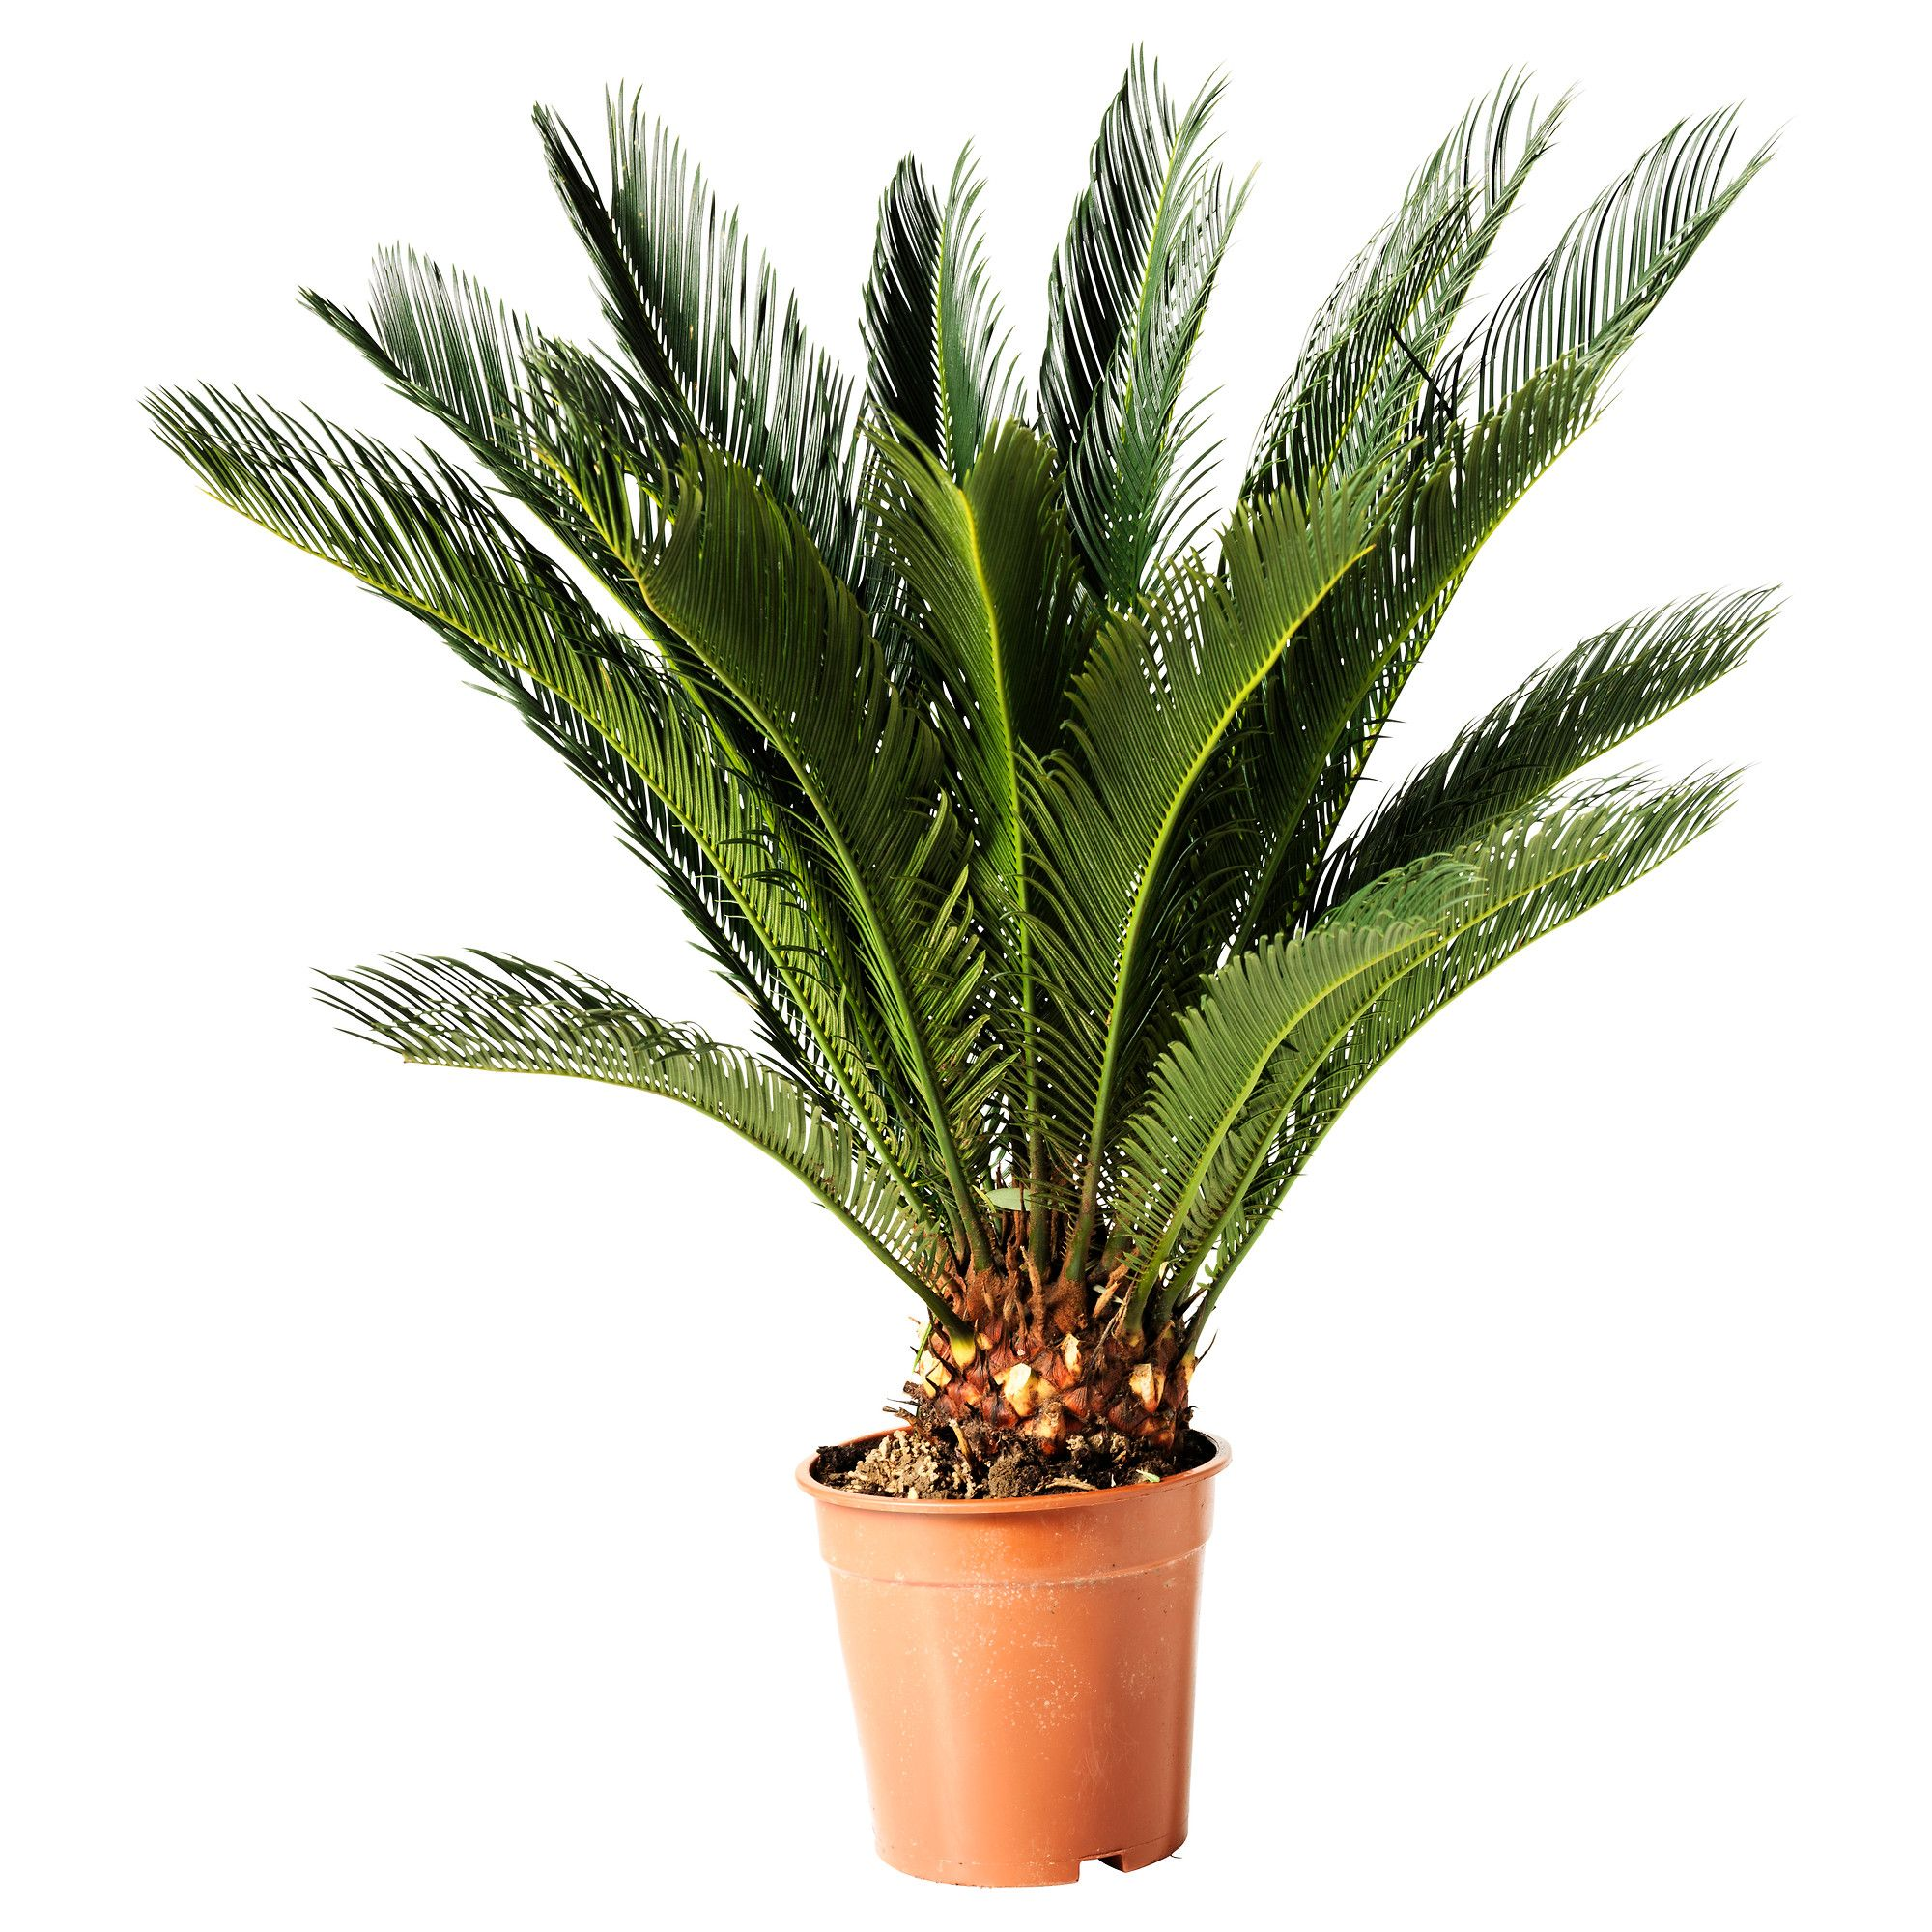 Ikea Palm Tree Cycas Revoluta Potted Plant Ikea Taman Plants Potted Plants